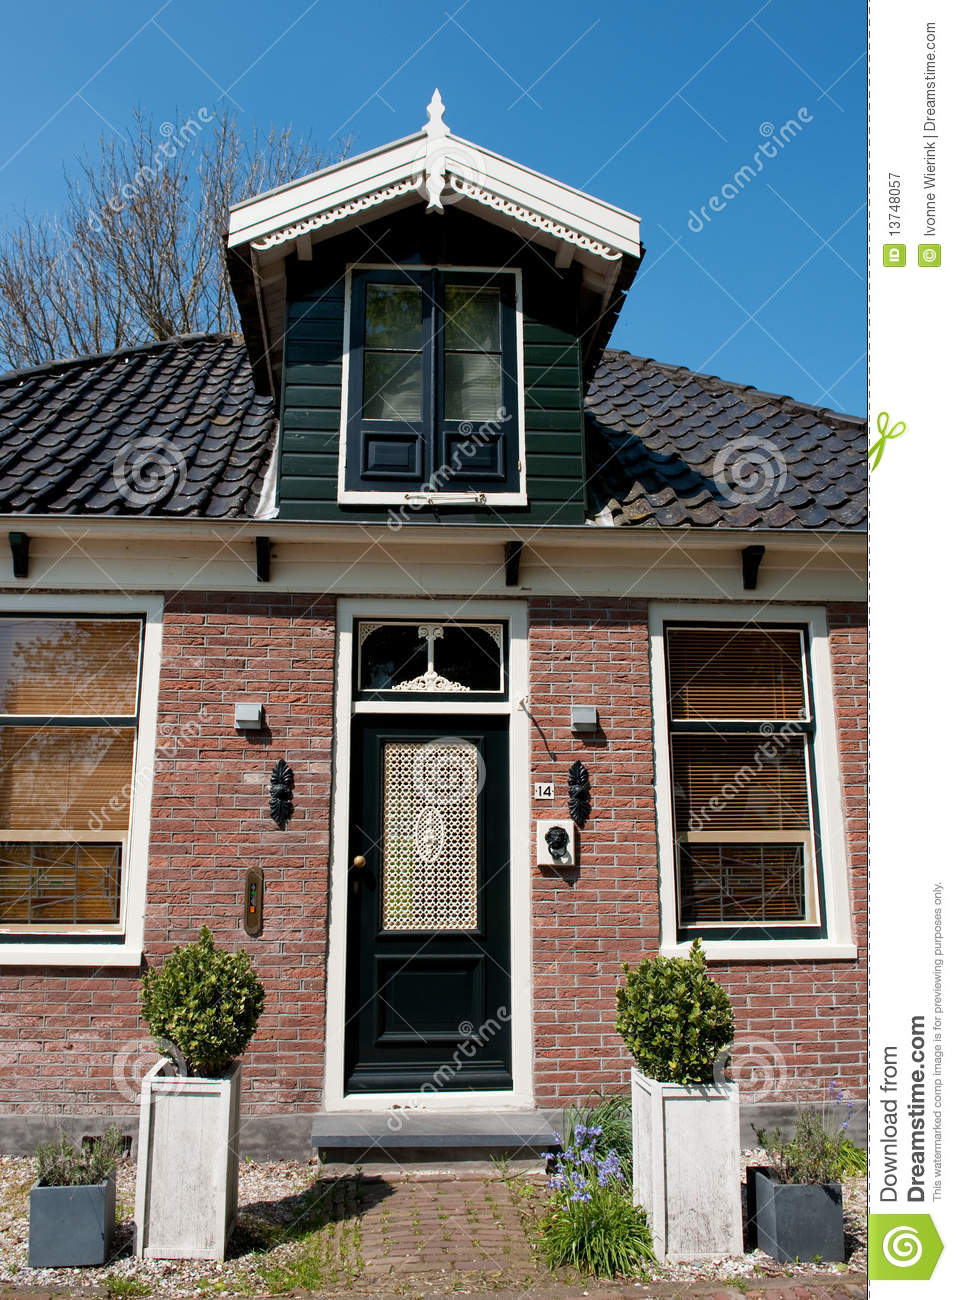 Traditional dutch house stock image image of green for Classic dutch house of 60m2